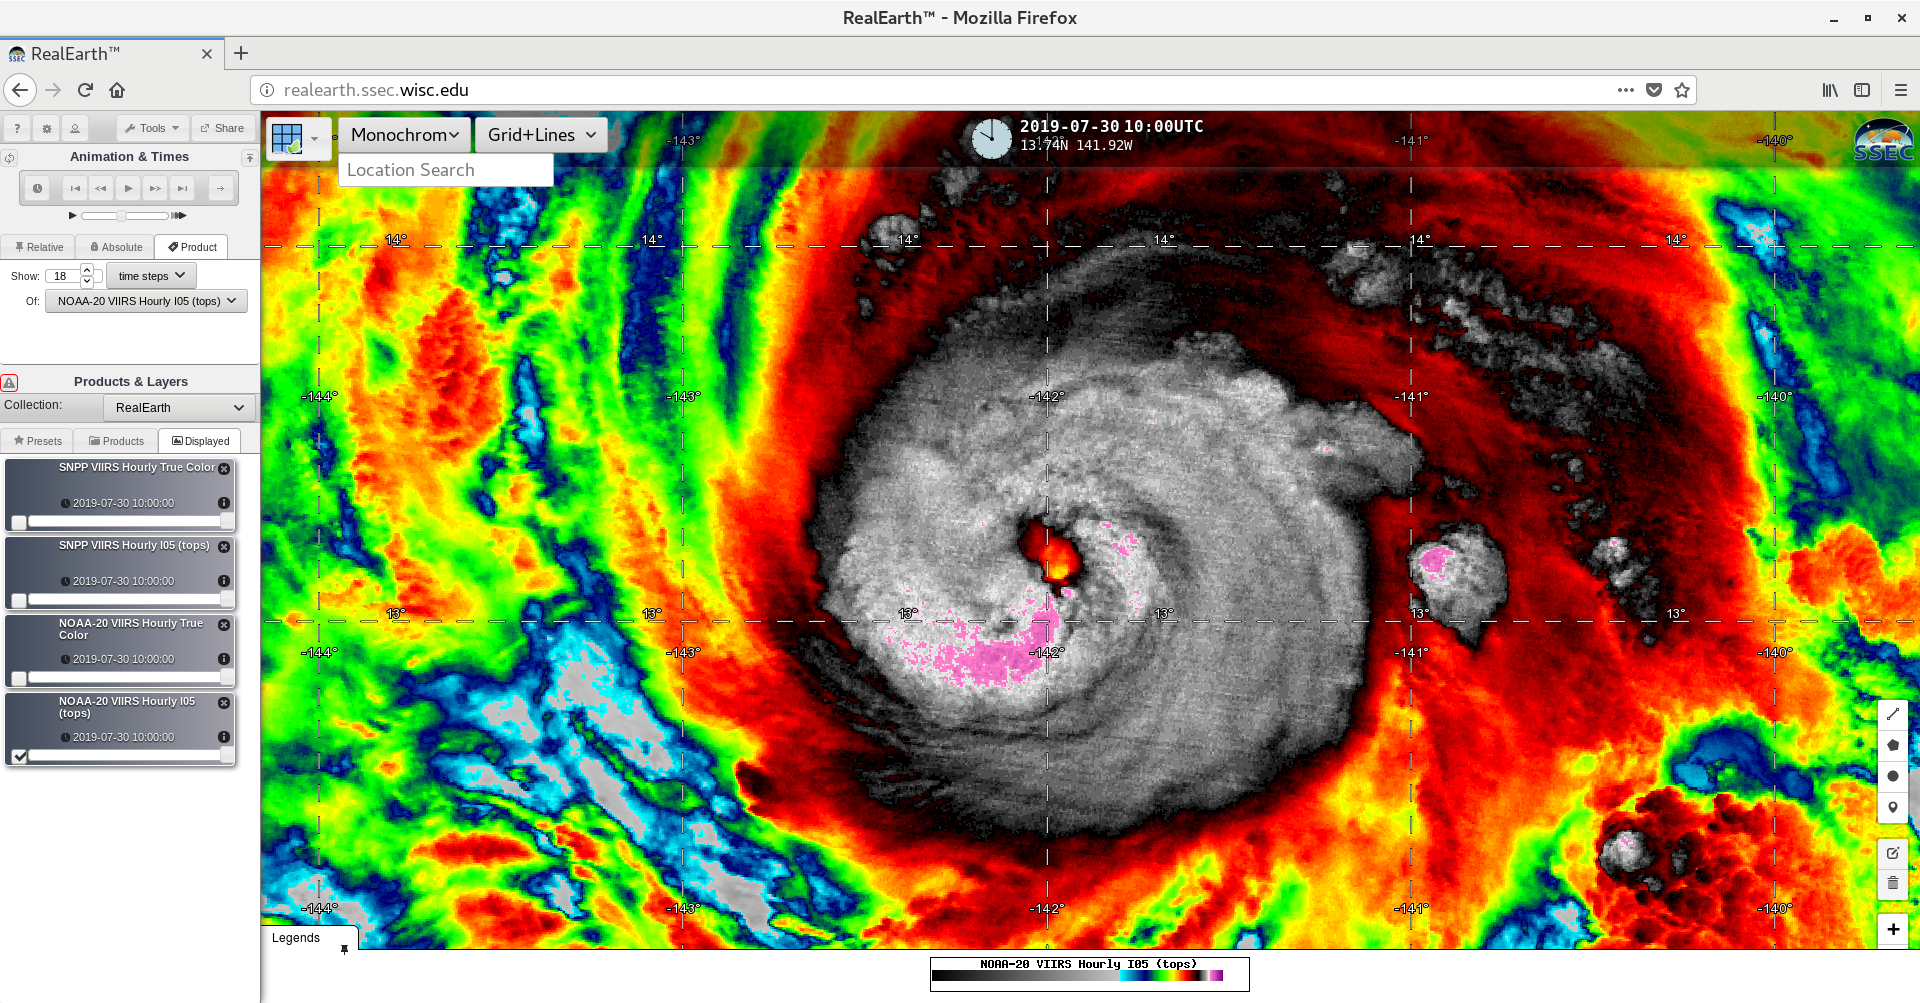 NOAA-20 VIIRS Infrared Window (11.45 µm) image [click to enlarge]